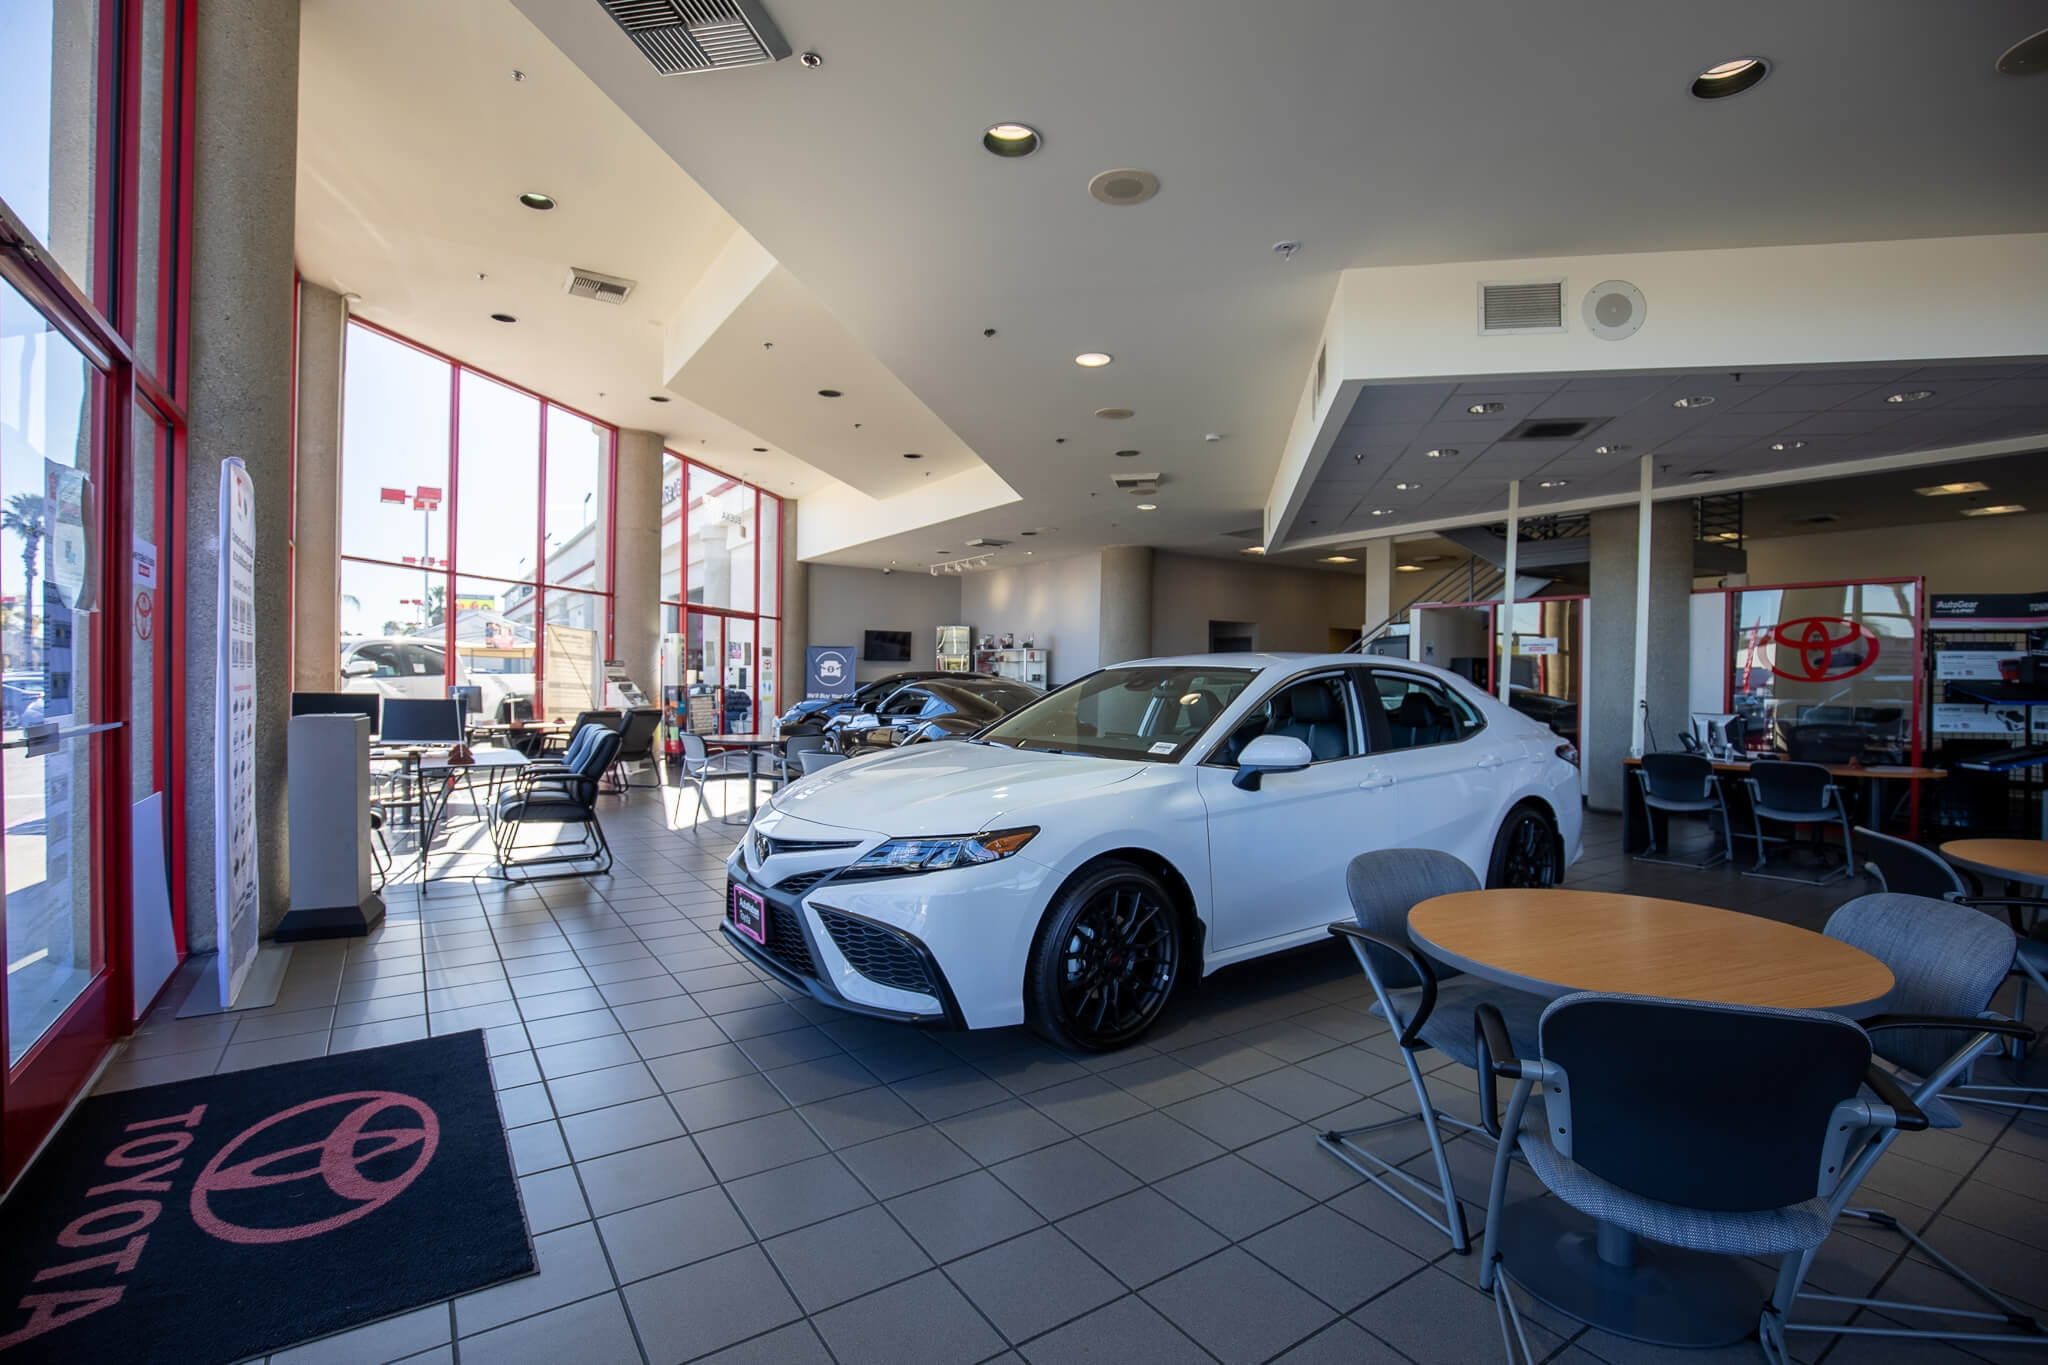 Interior view of the showroom floor at AutoNation Toyota Buena Park